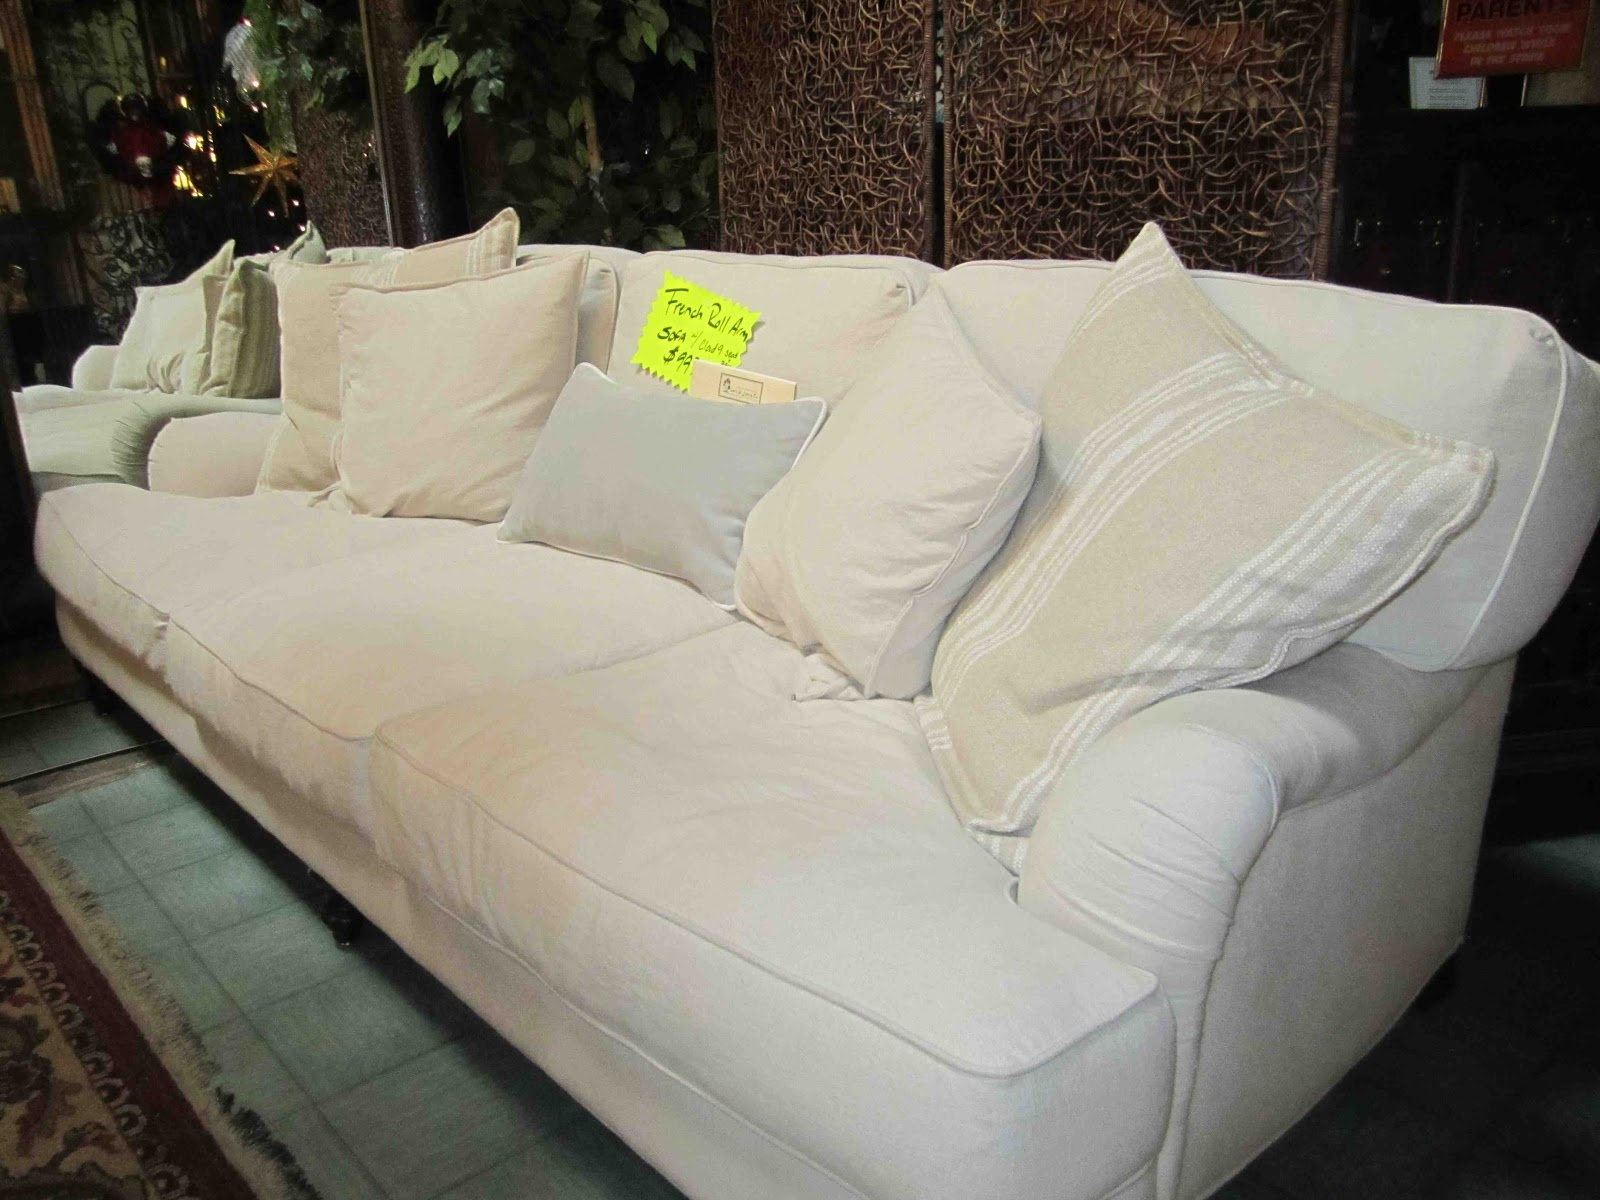 Deep Sofas Double Bed Sofa Mattress From Purdue To Provence An Authentic Haunted House And A